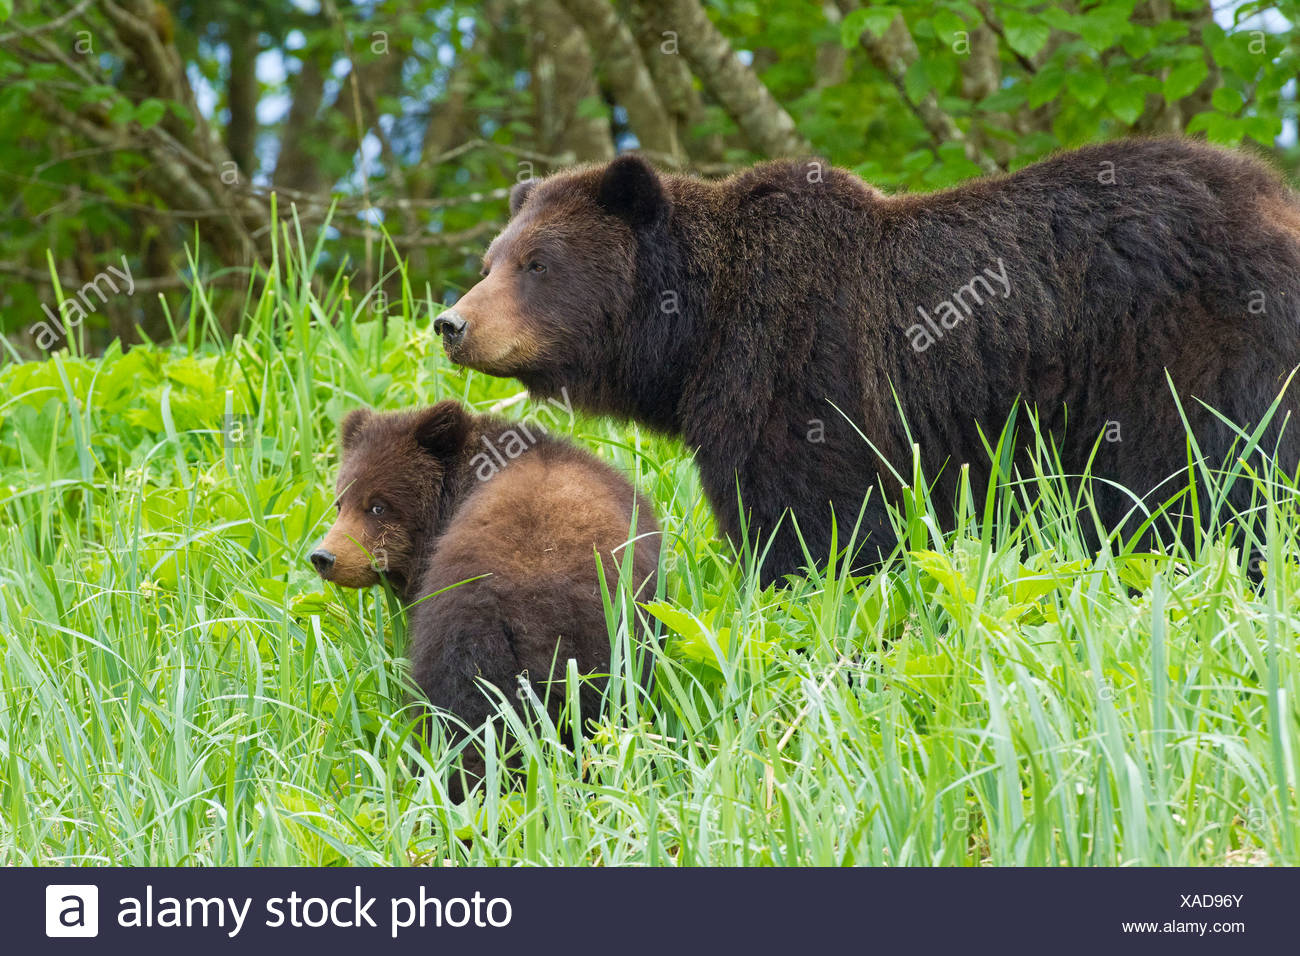 A Brown bear sow and cub forage on sedge and beach grass at the edge of an estuary on Admiralty Island, Alaska - Stock Image